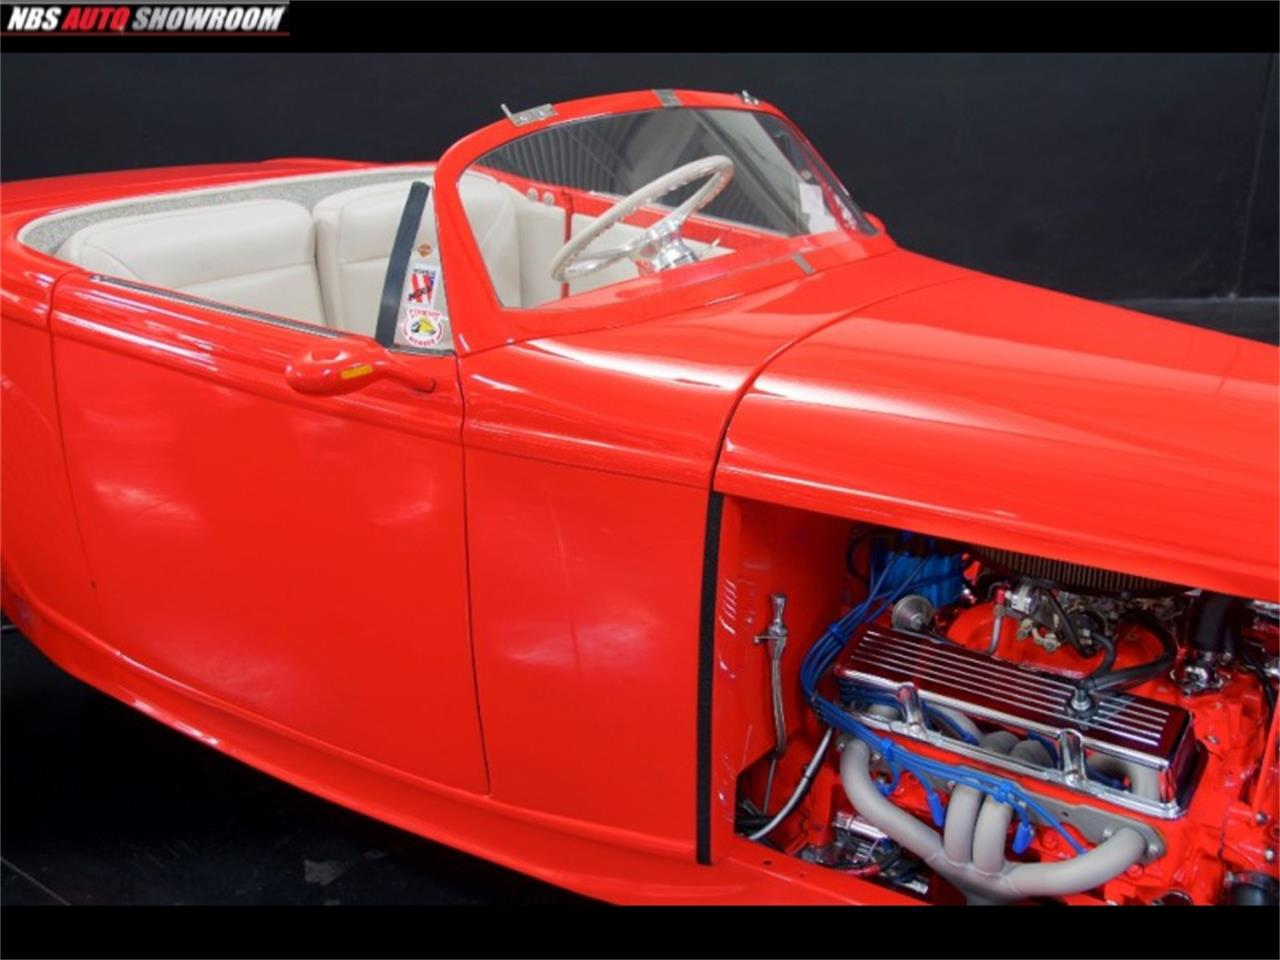 Large Picture of Classic 1932 Ford Roadster Offered by NBS Auto Showroom - QY4R